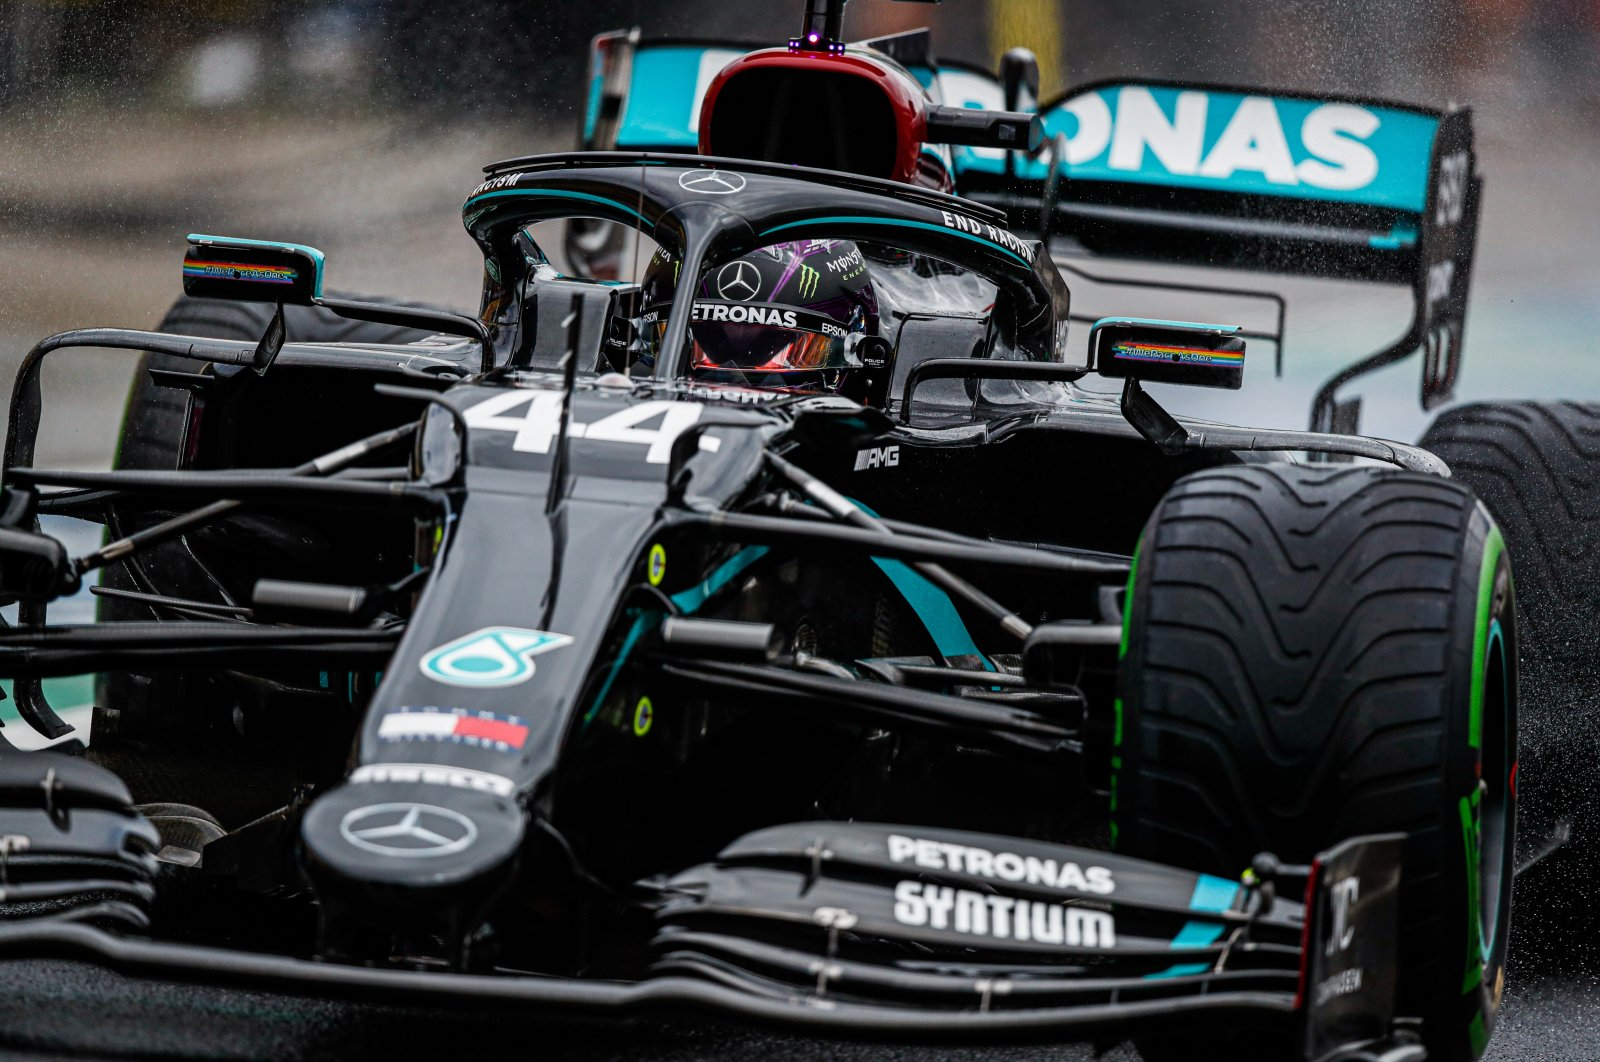 Mercedes' Lewis Hamilton in action during the Hungarian Grand Prix in Mogyorod, Hungary, July 19, 2020. (EPA Photo)